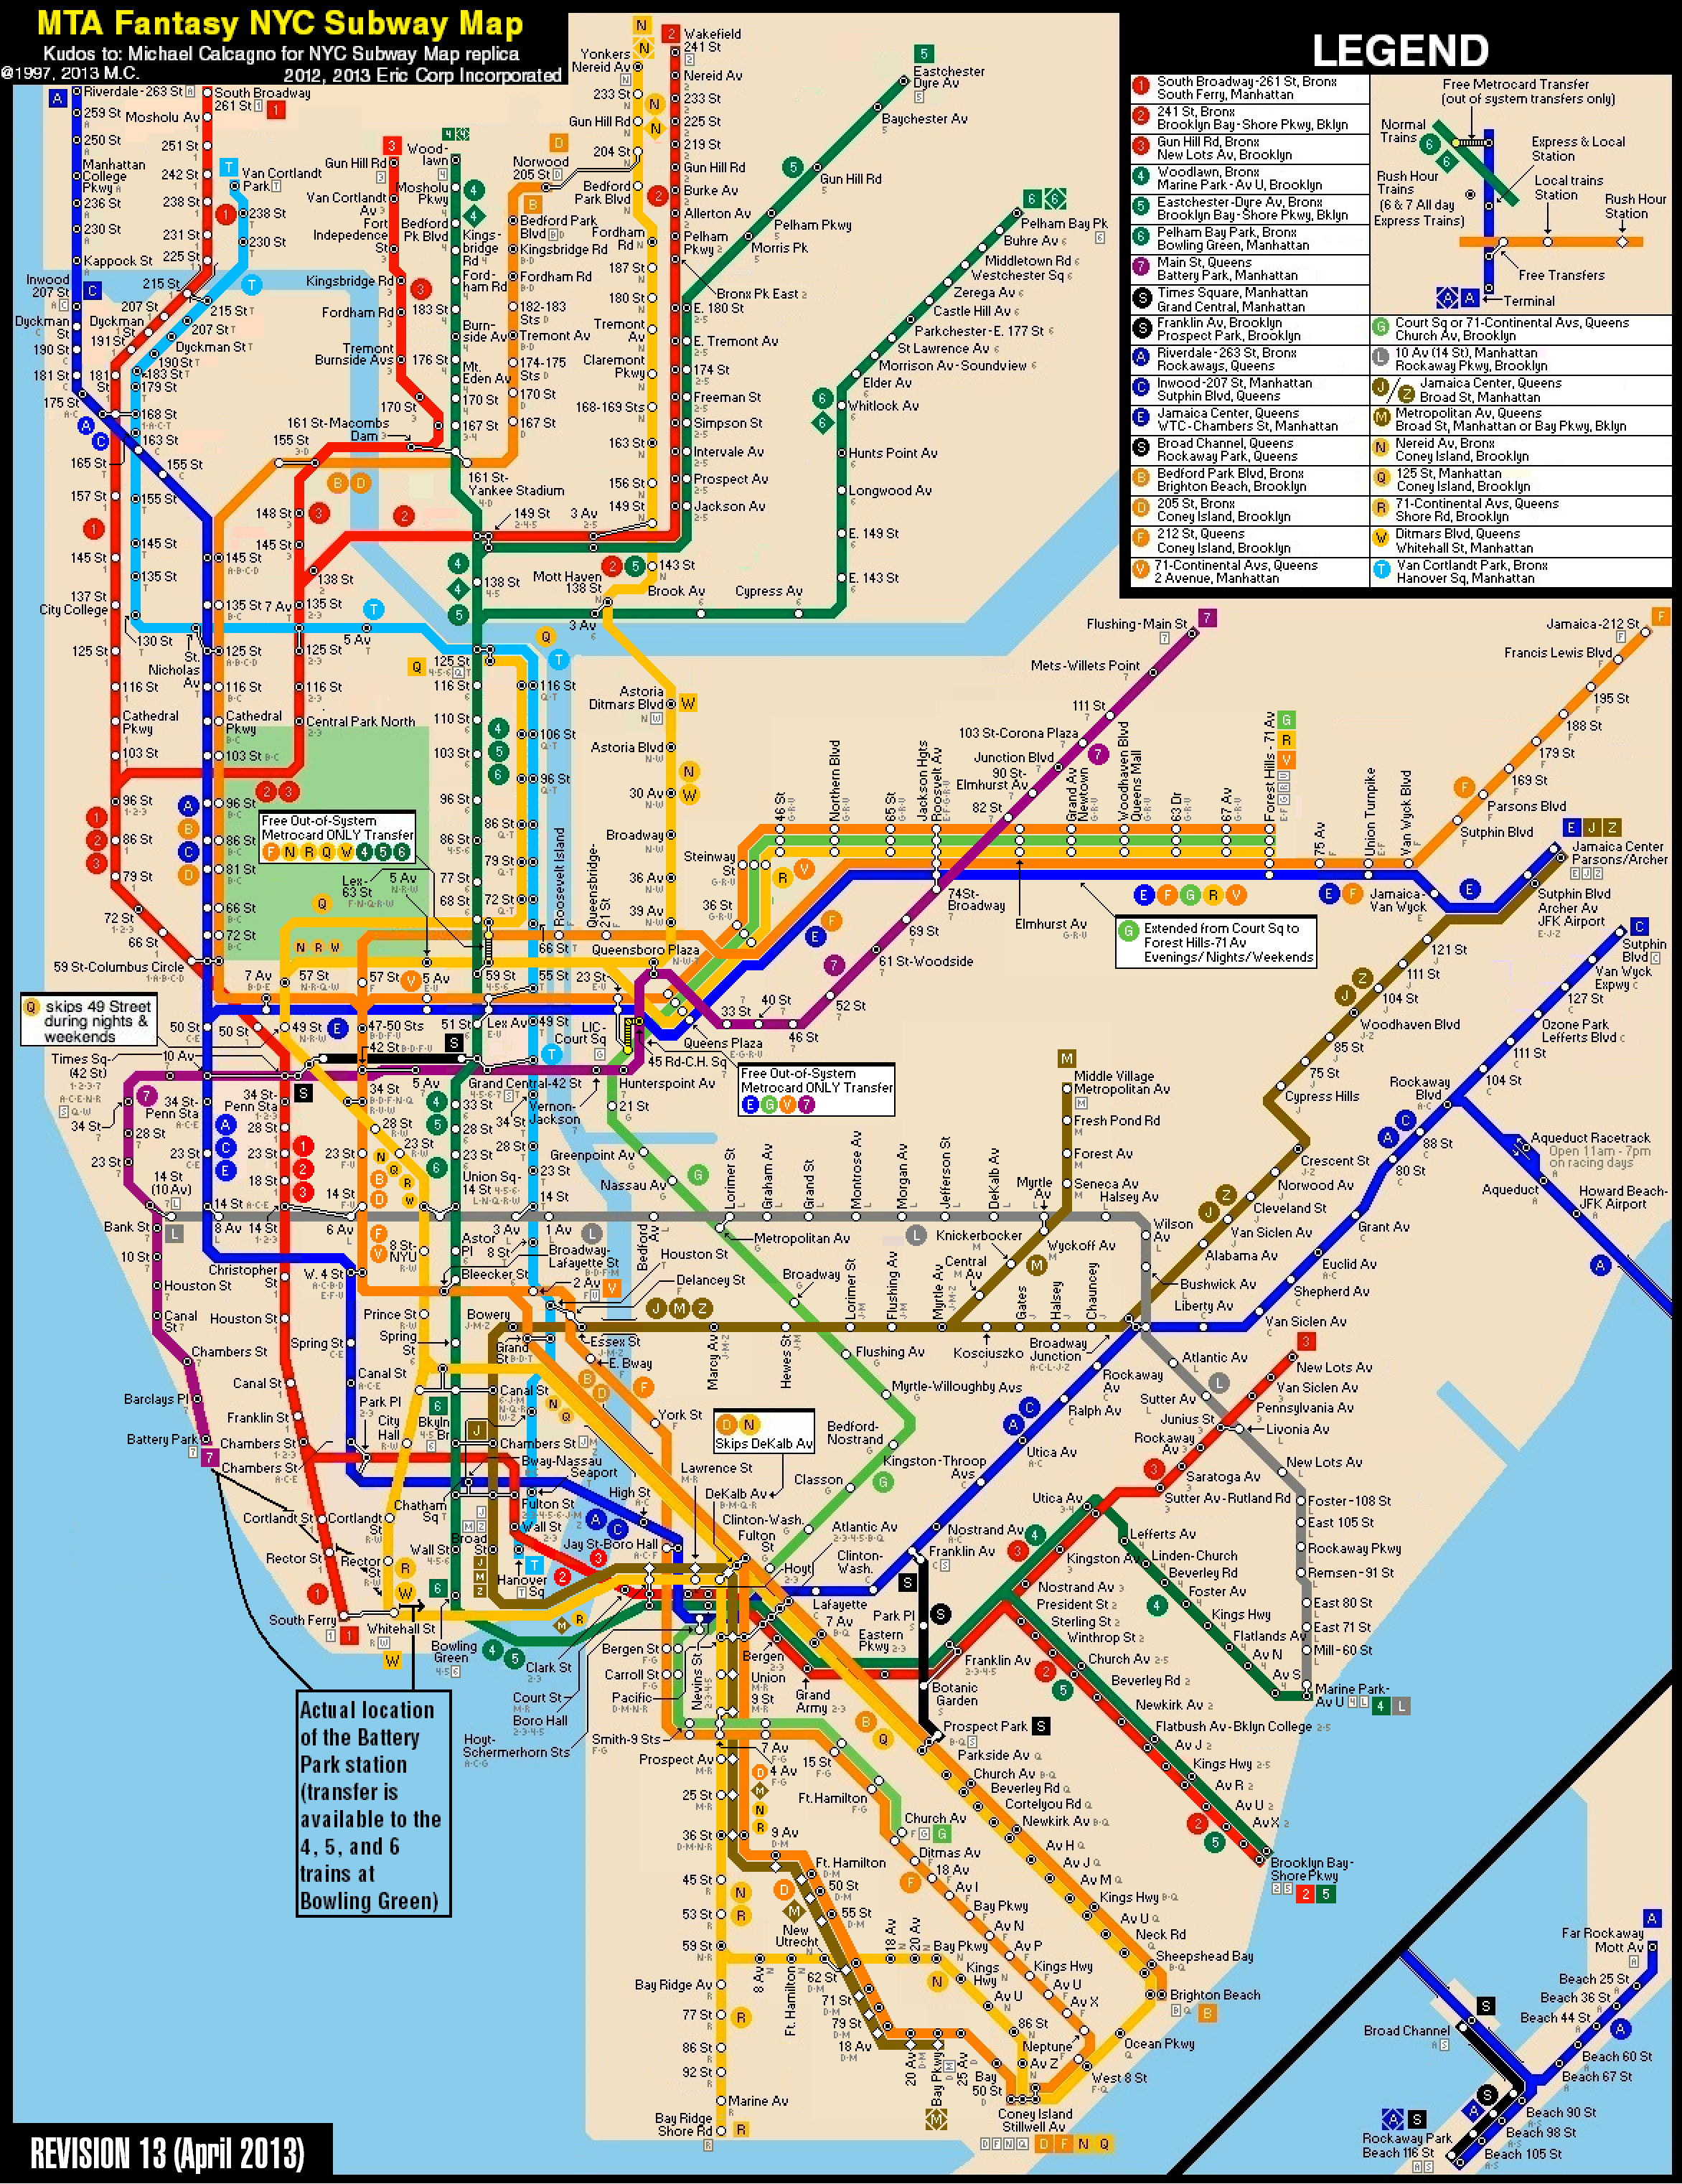 New York City Metro Map New York Subway Map | New York City Subway Fantasy Map (Revision